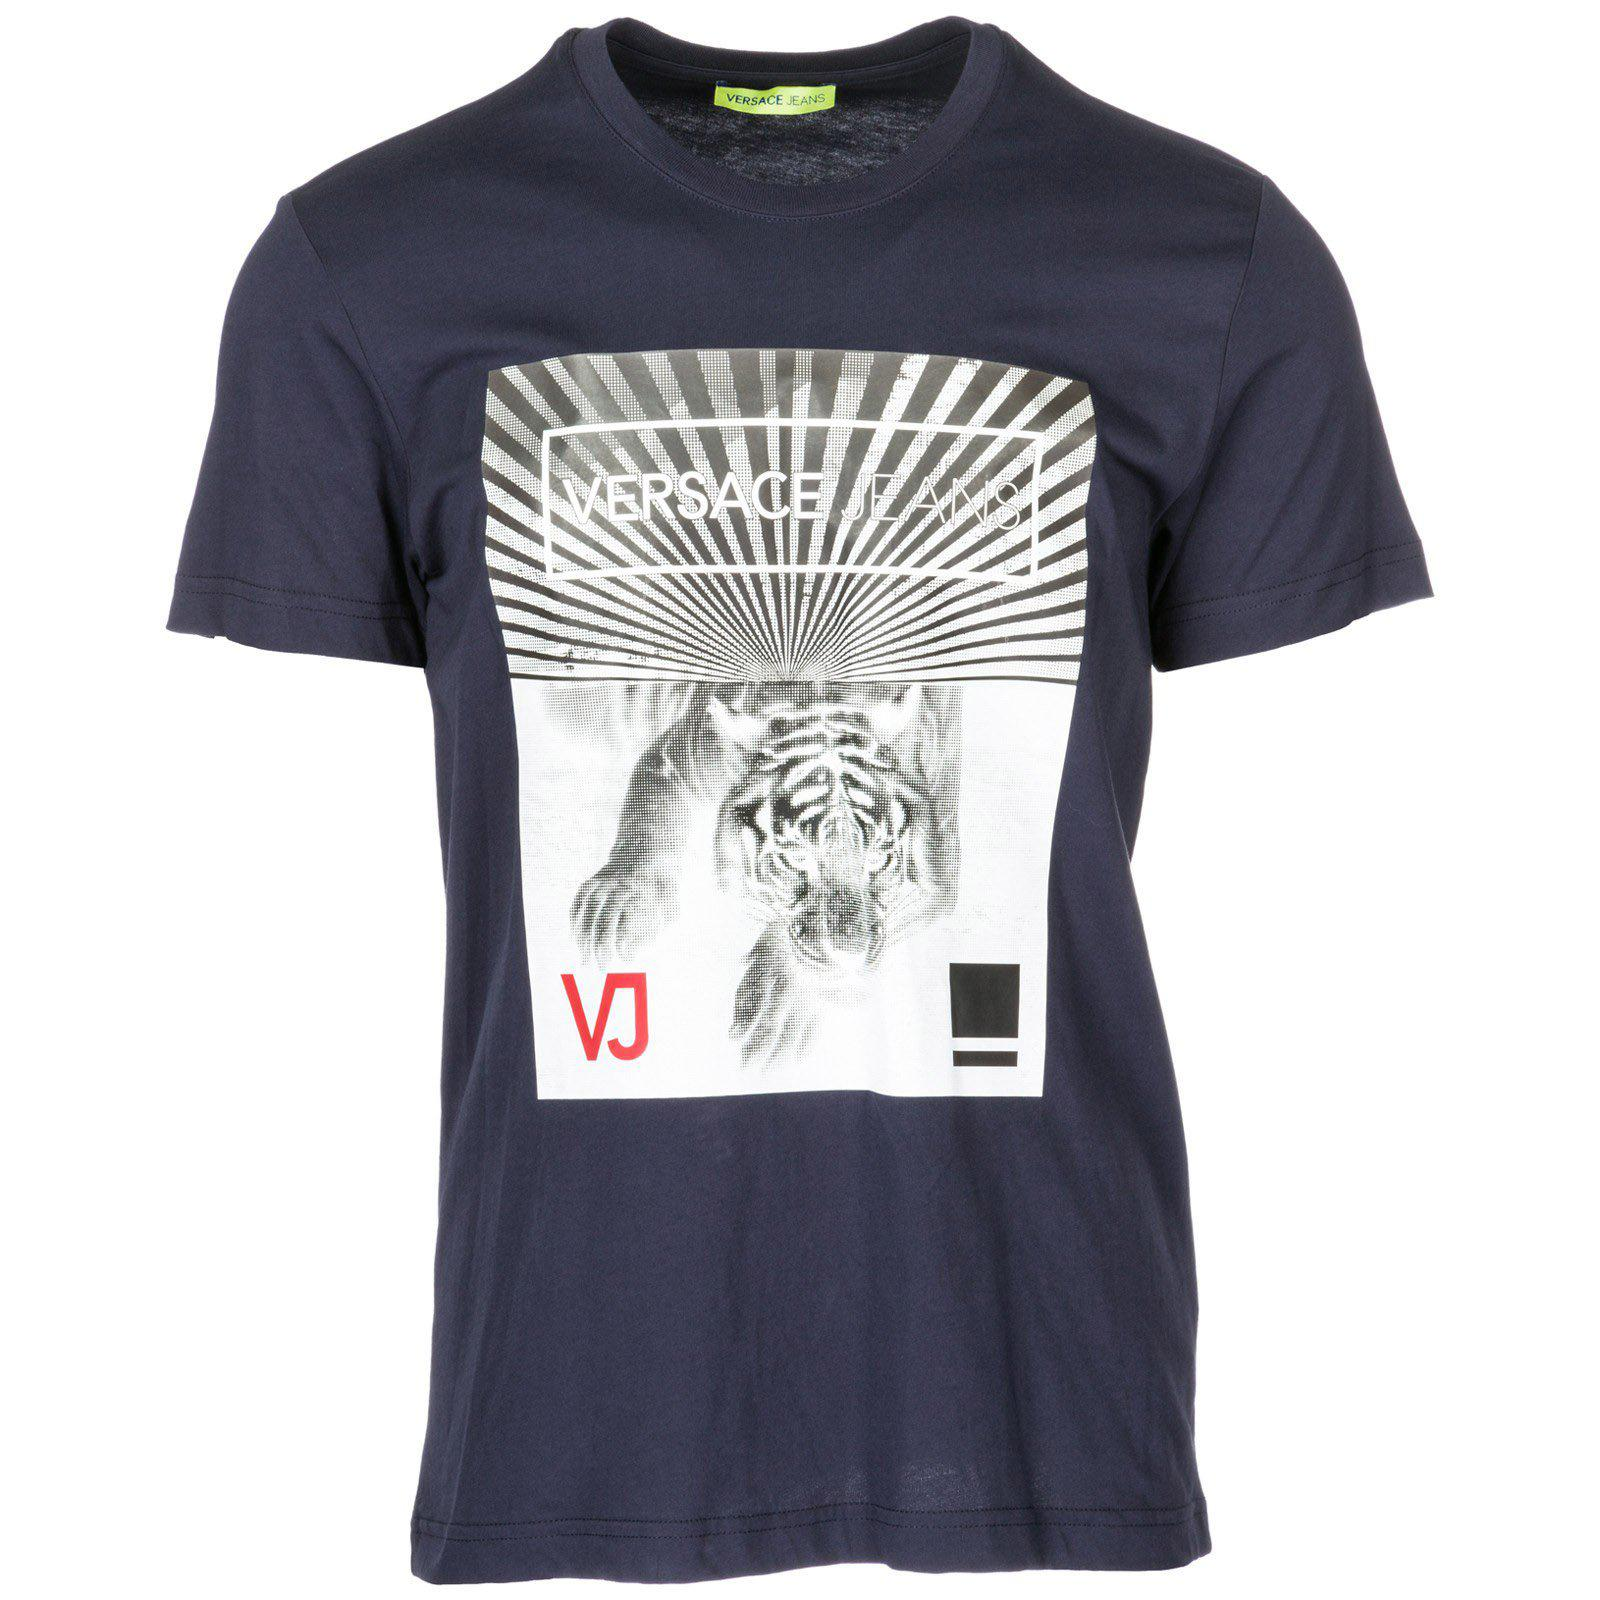 821bf687 Lyst - Versace Jeans Tiger Print T-shirt in Blue for Men